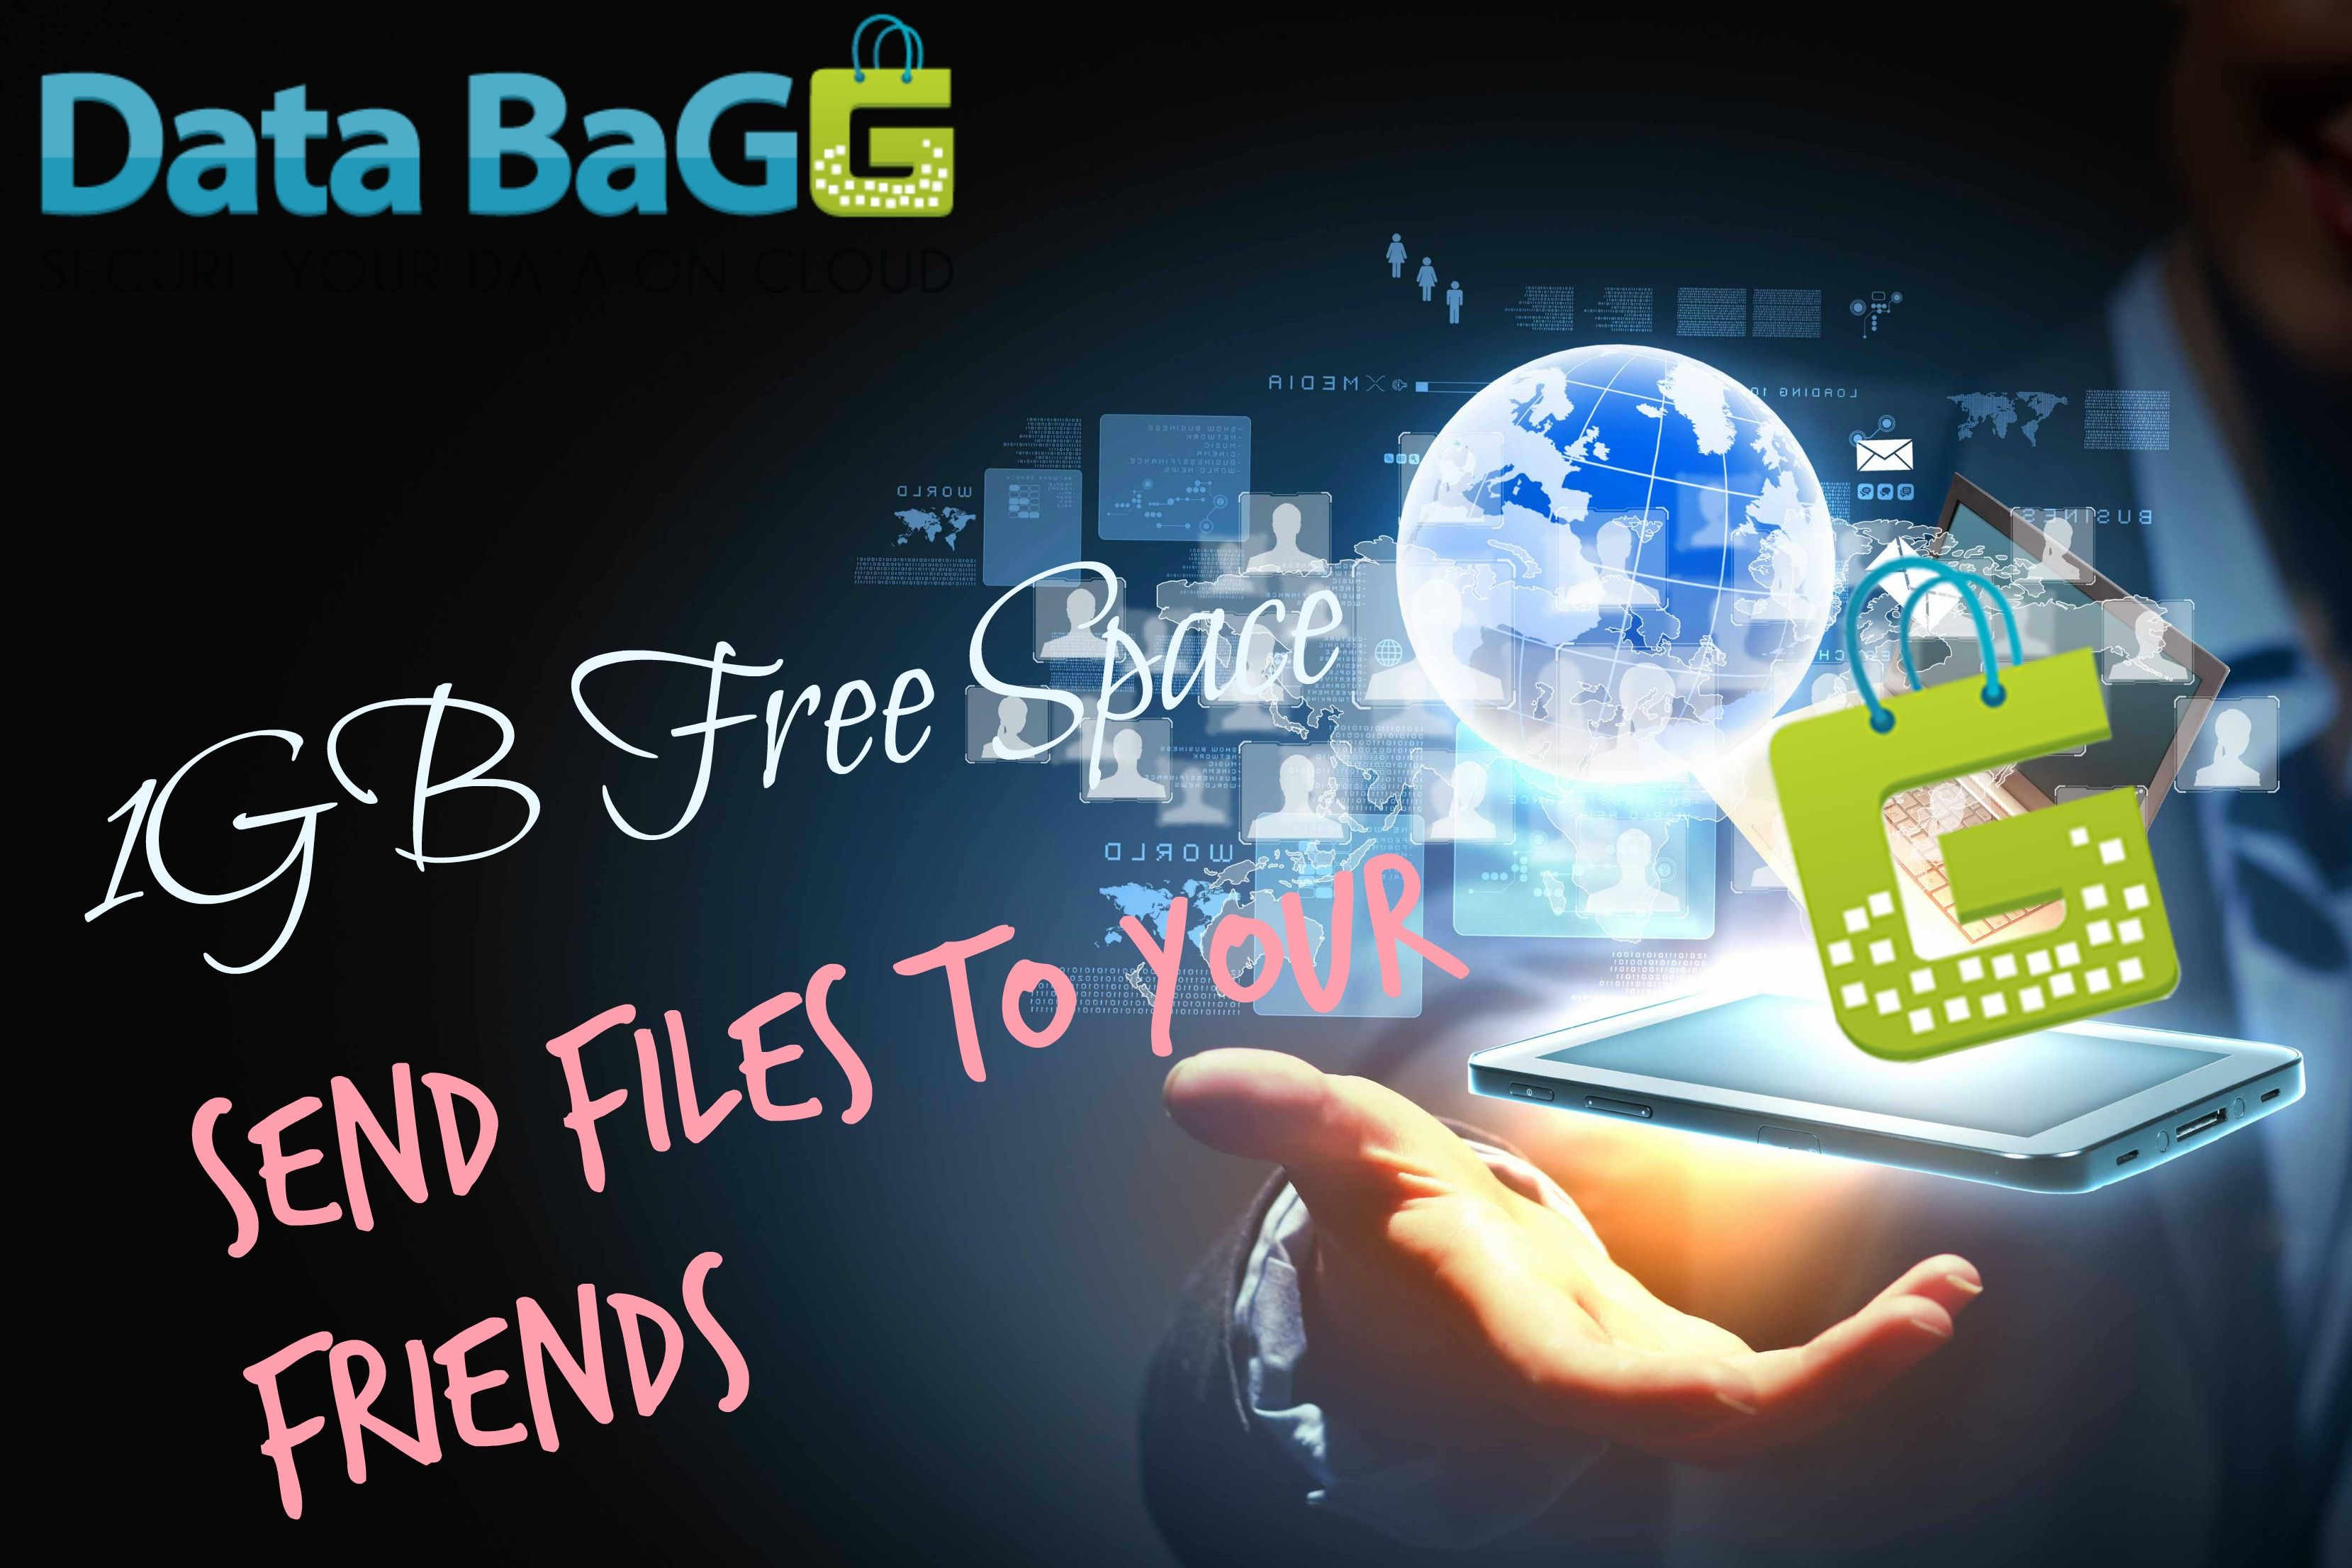 Send your loved ones up to 1GB file for free ! Data